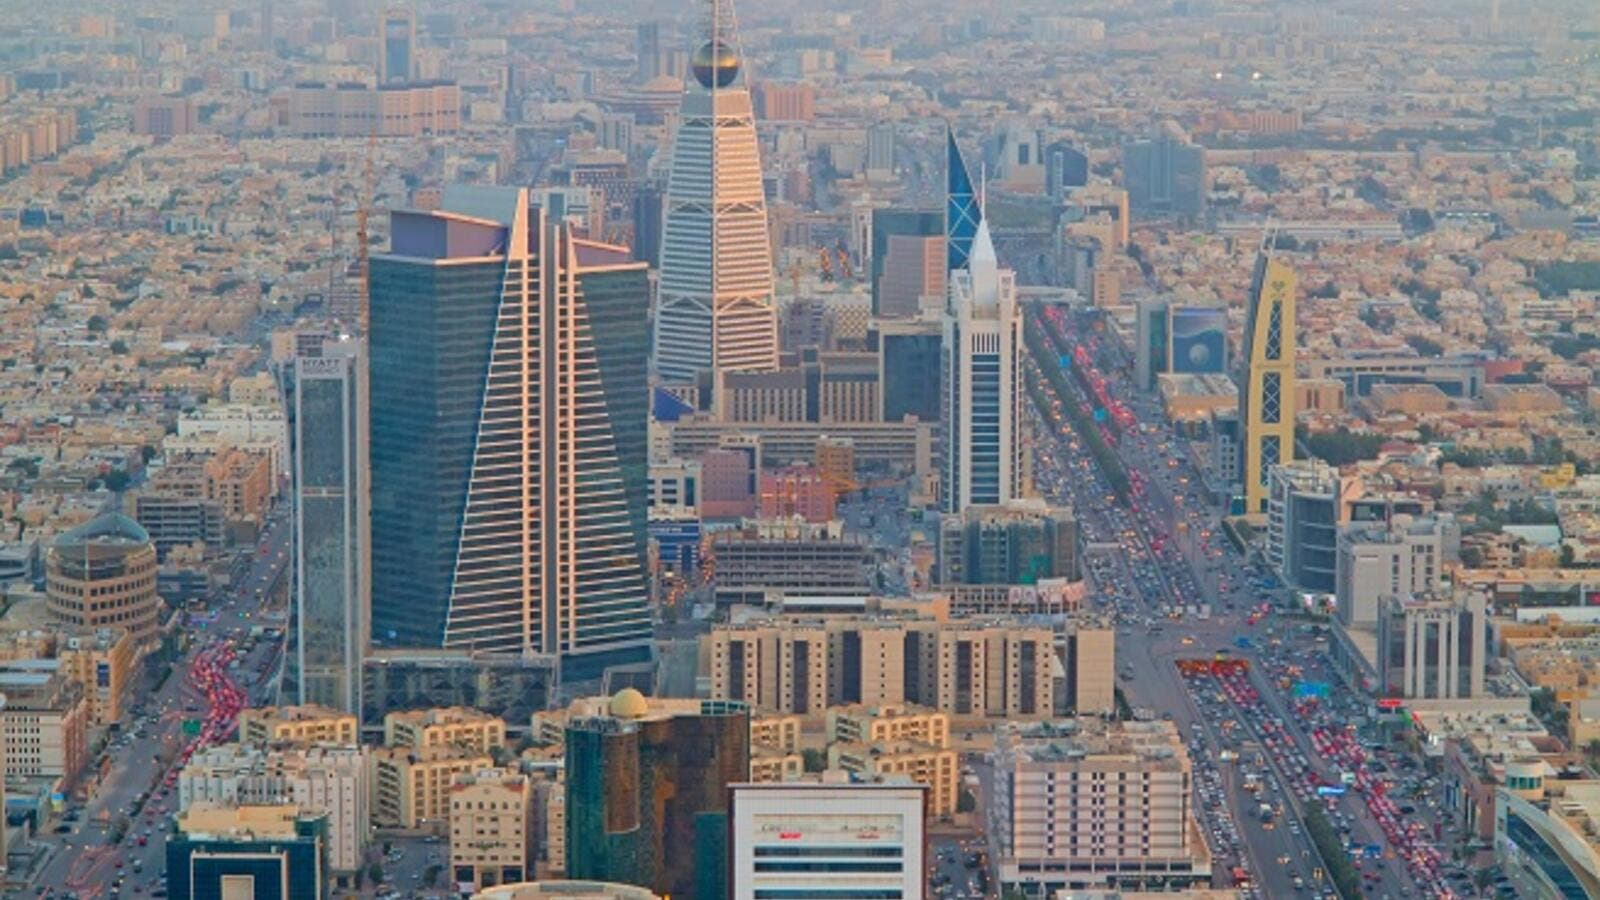 Saudi citizens will be able to access cheaper and more accessible mortgages at fixed rates under an initiative launched Wednesday by the Saudi Real Estate Refinance Company. (Shutterstock)